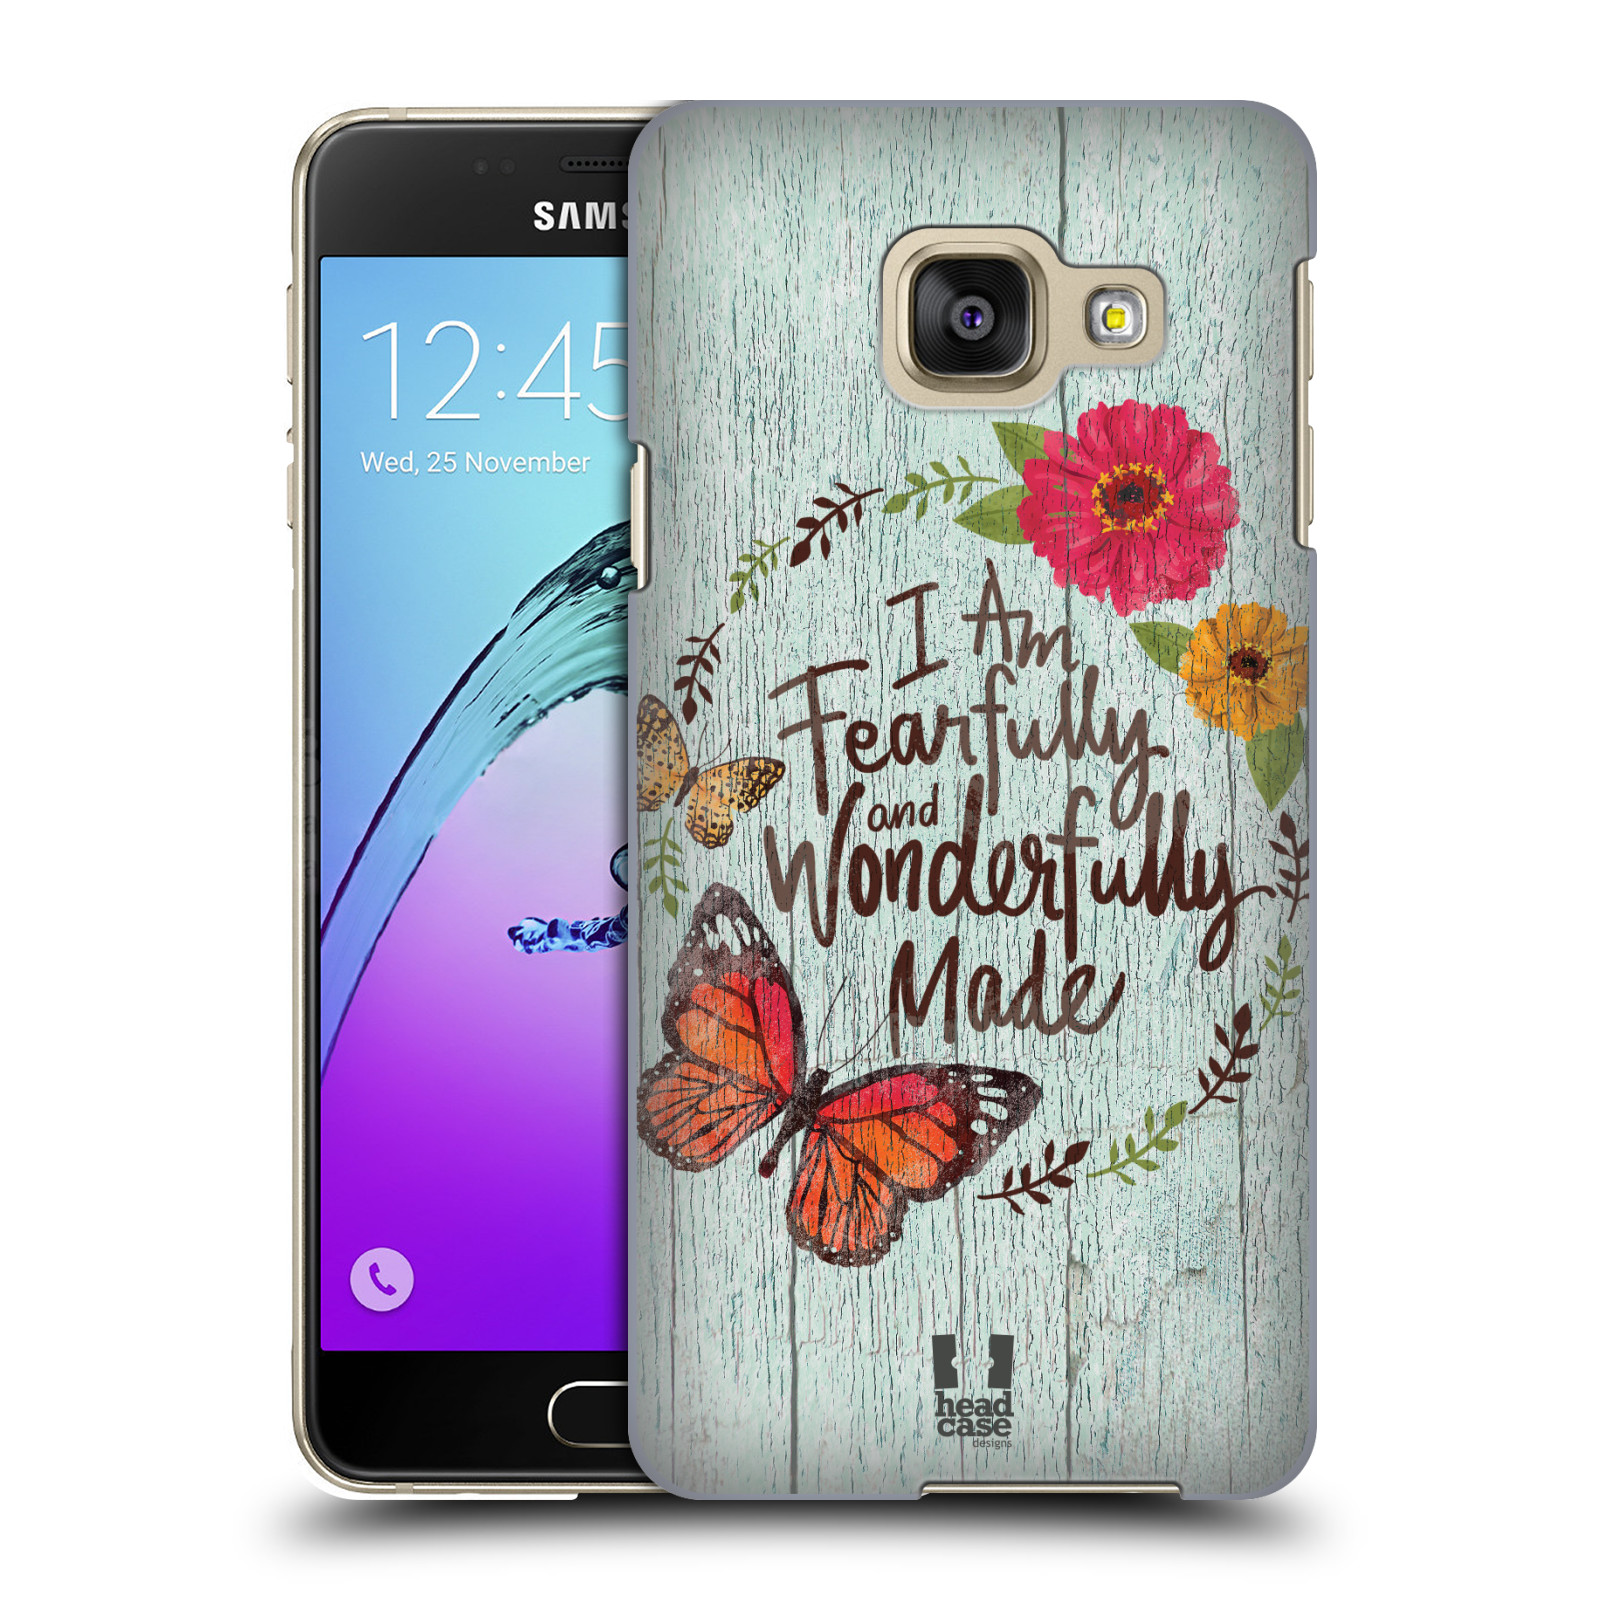 Plastové pouzdro na mobil Samsung Galaxy A3 (2016) HEAD CASE LIFE IN THE COUNTRY WONDERFULLY